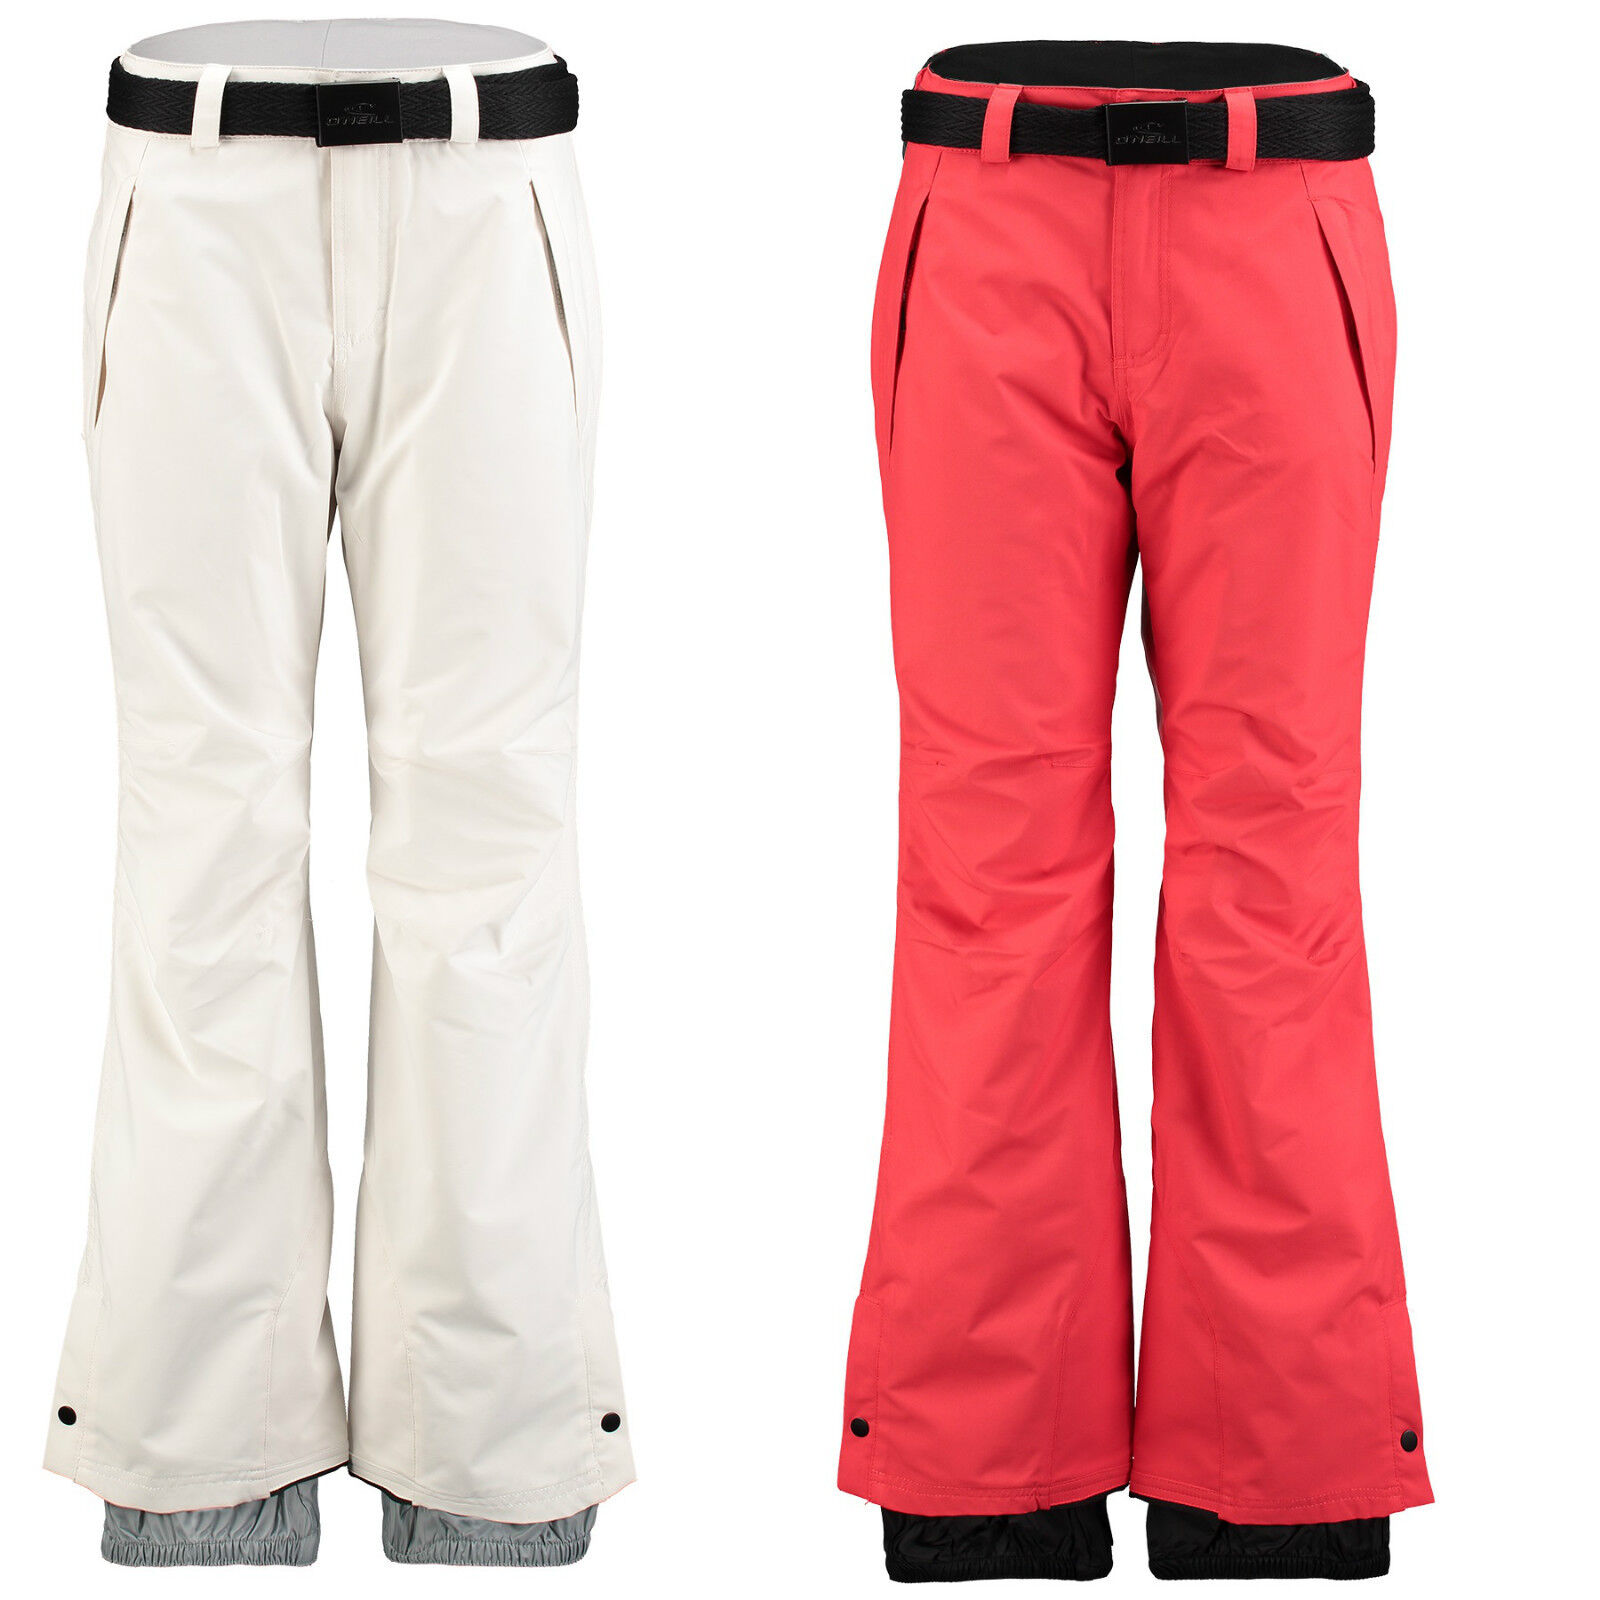 O'NEILL PW STAR SKI PANT SNOWBOARDING SALOPETTES WATERPROOF BREATHABLE 10K